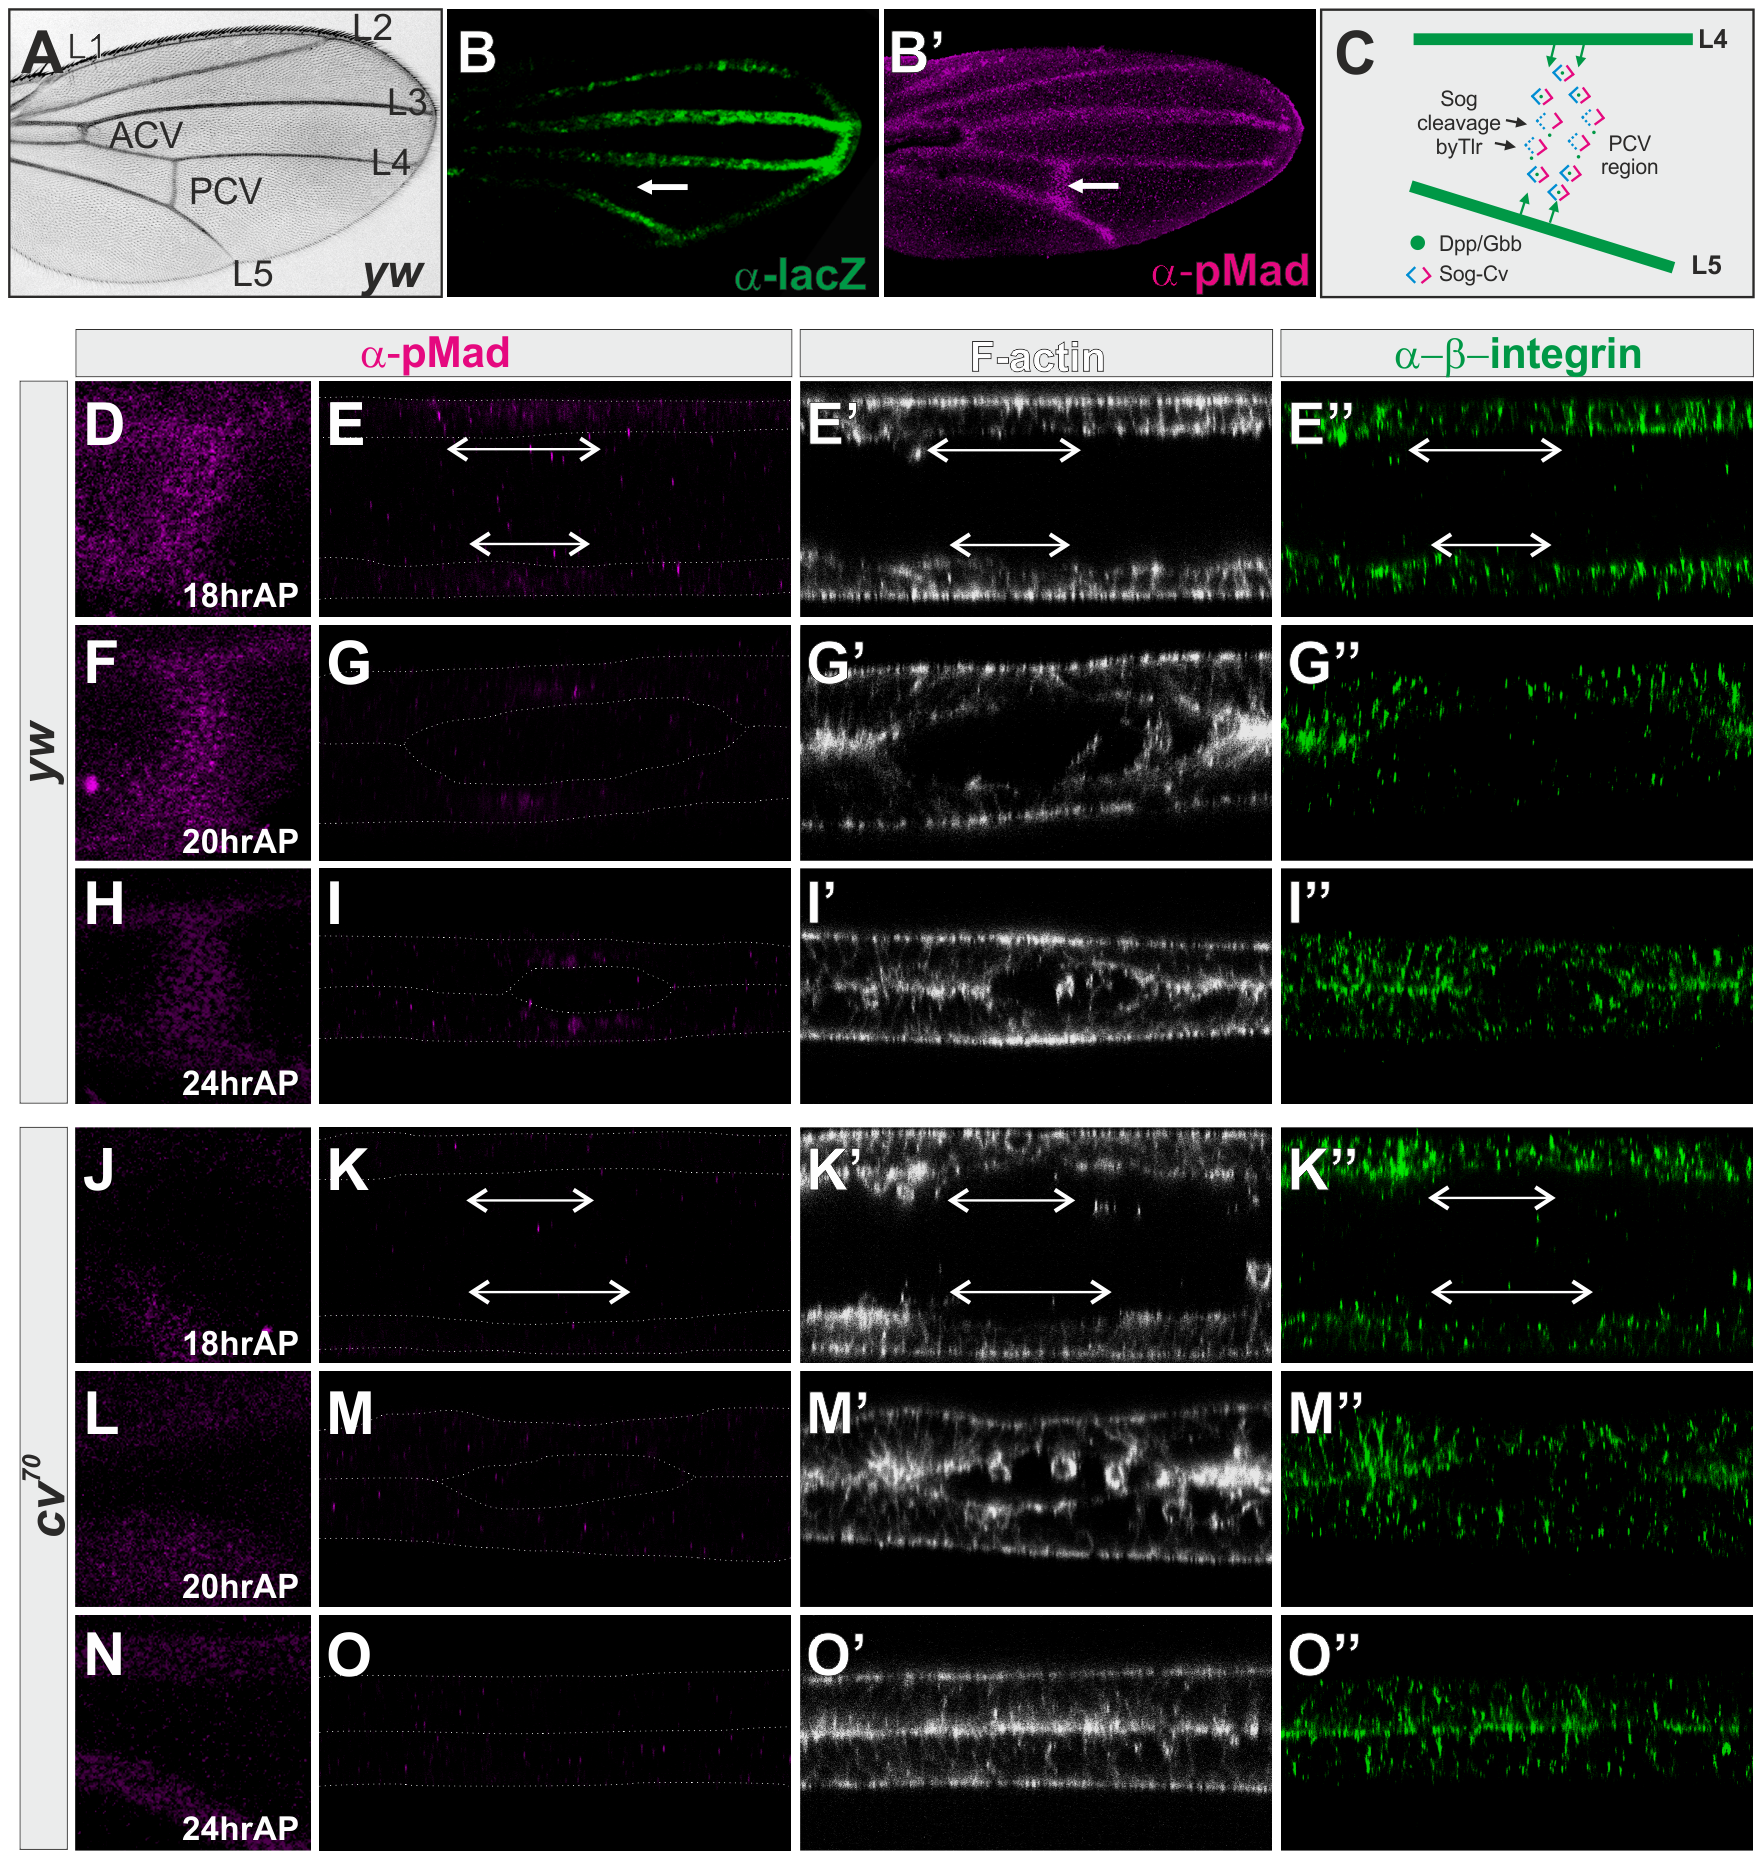 BMP signaling is required for PCV morphogenesis.